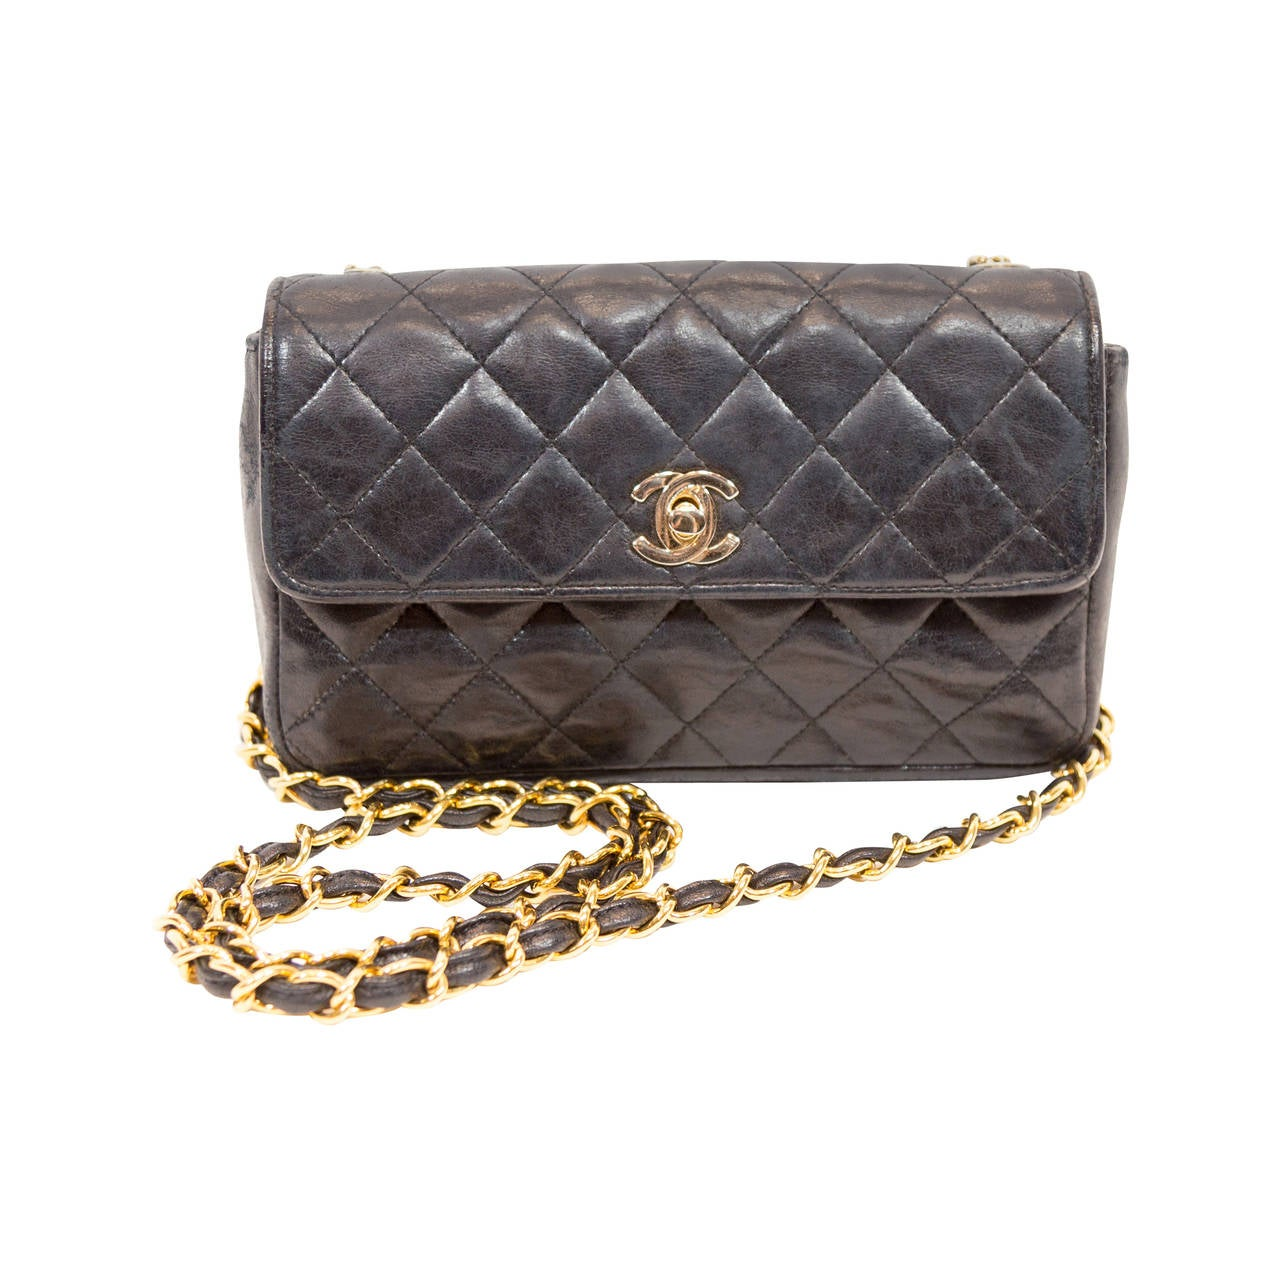 Case Design chanel purse phone case This Chanel Vintage Black Quilted Cross Body Bag is no longer ...